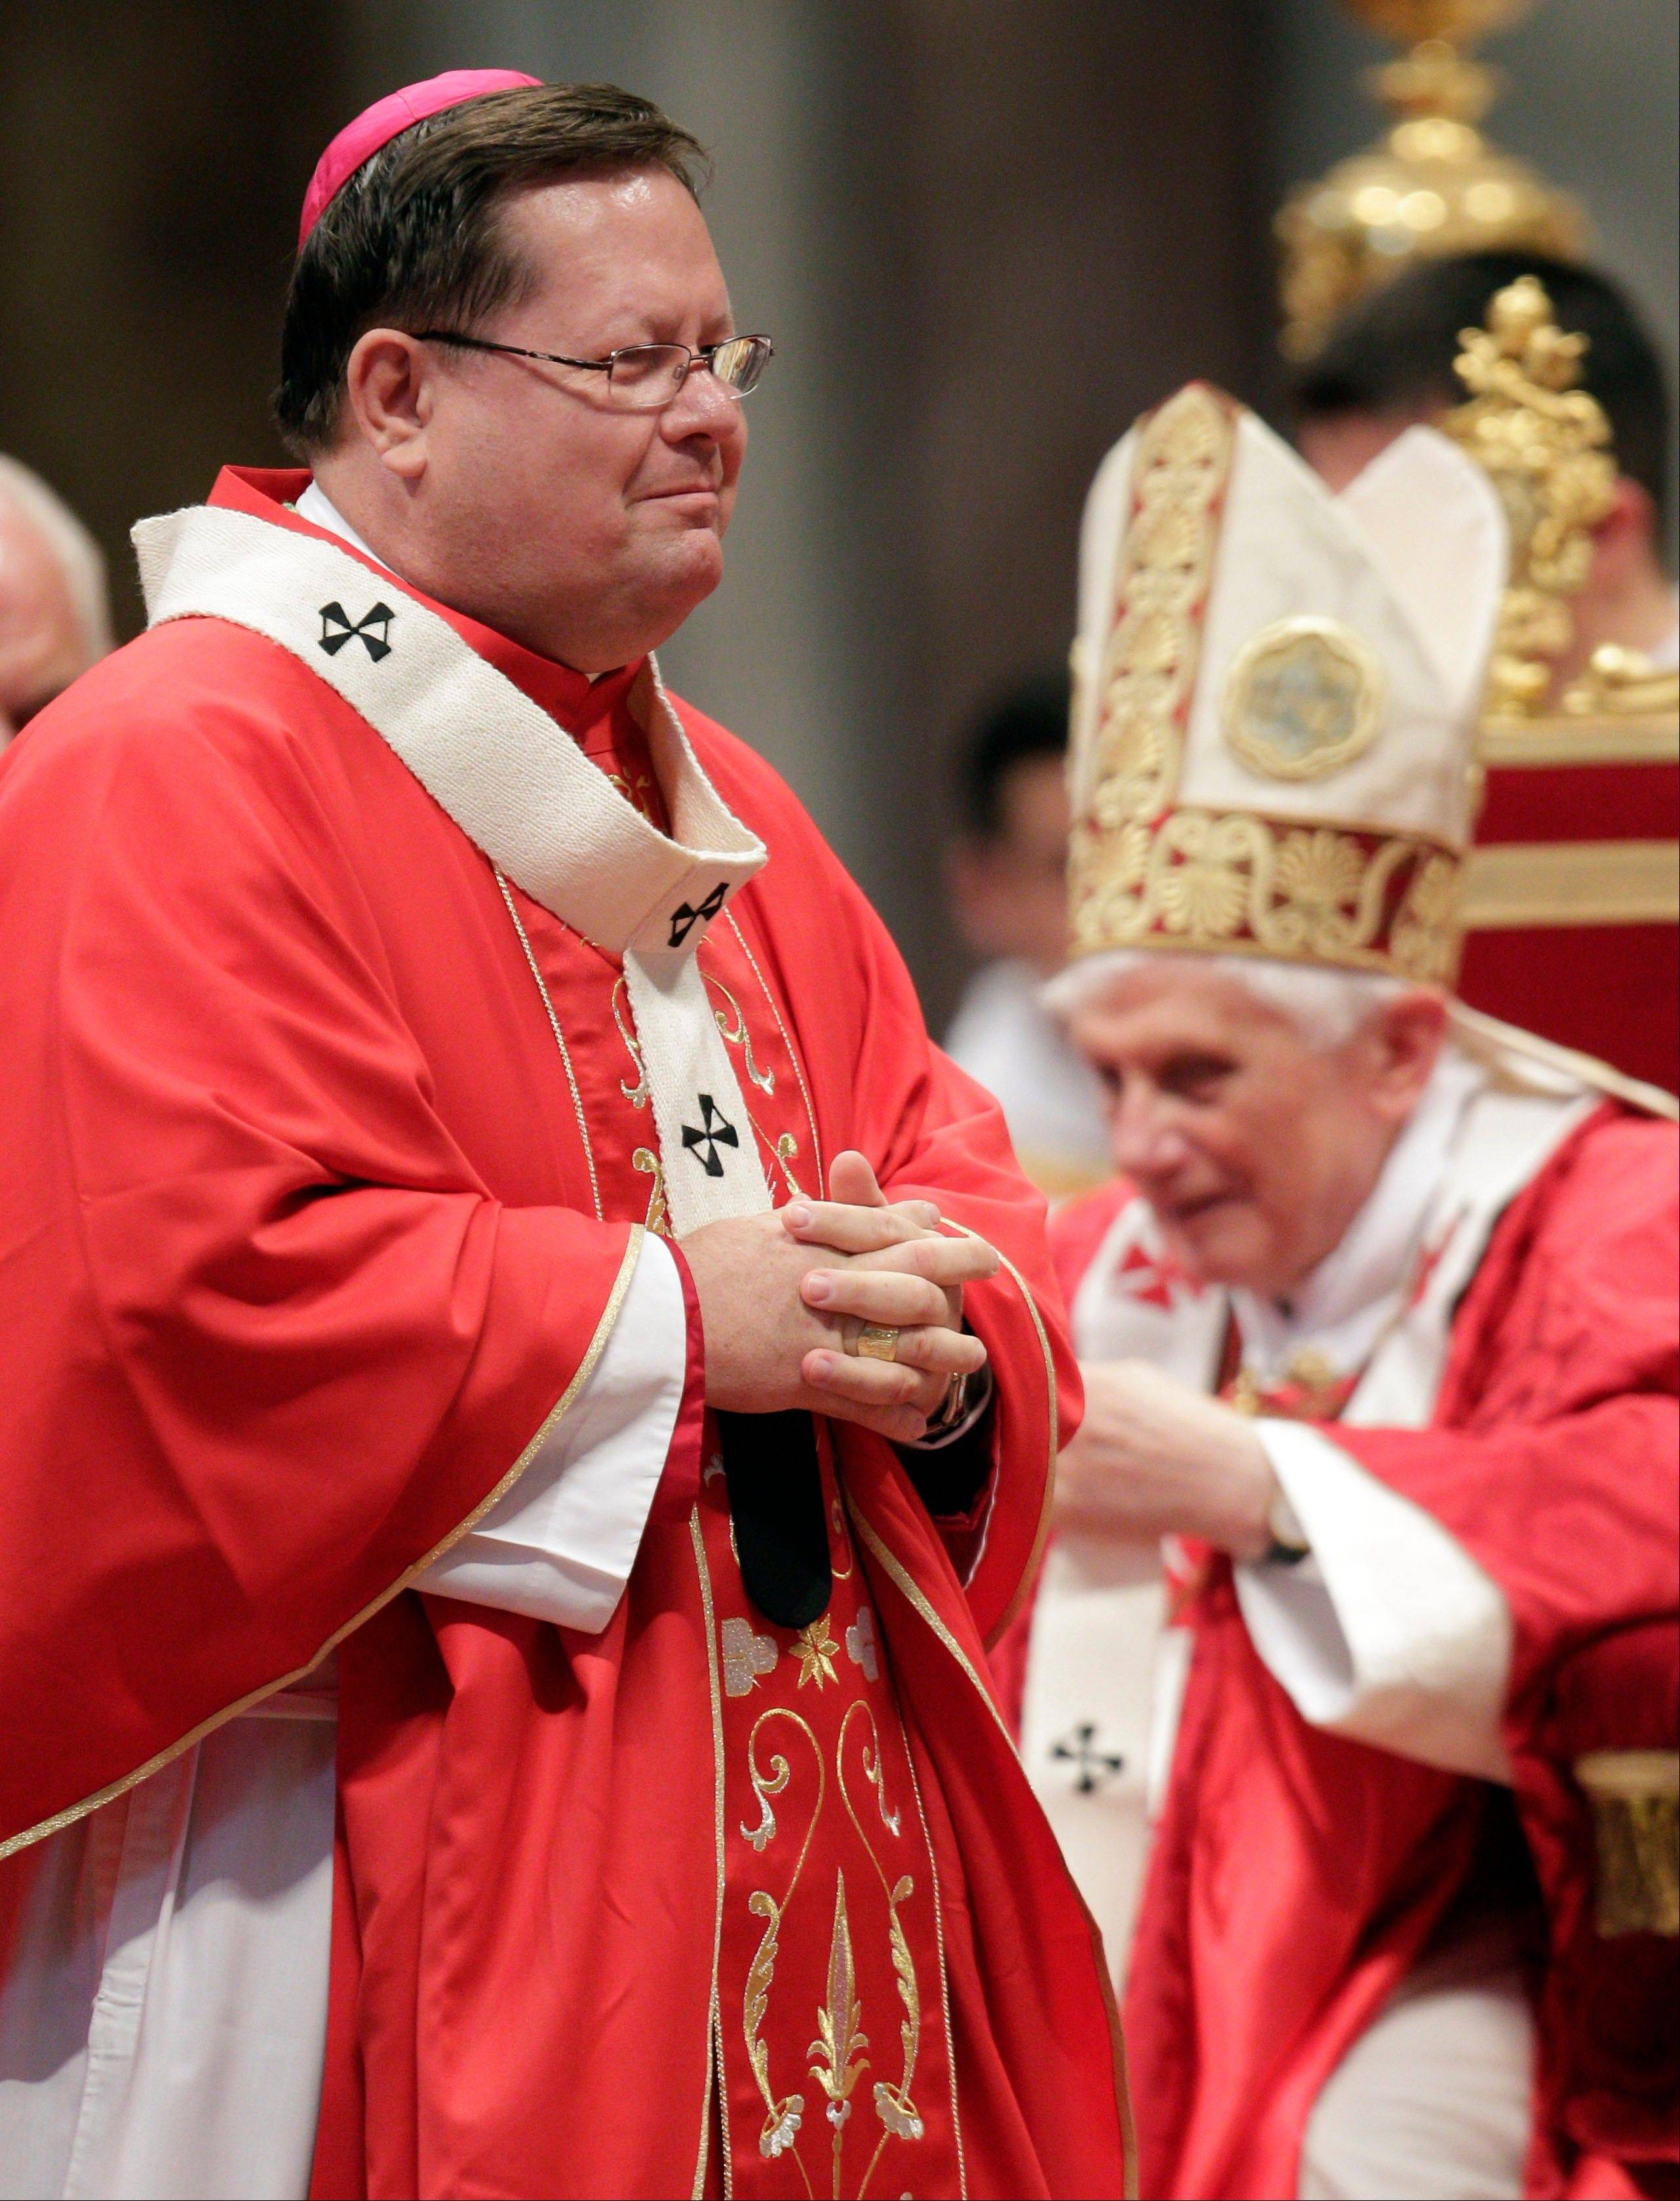 Archbishop of Quebec Gerald Cyprien Lacroix, shown walking past Pope Benedict XVI after receiving the pallium, is among the 19 new cardinals that Pope Francis announced Sunday.